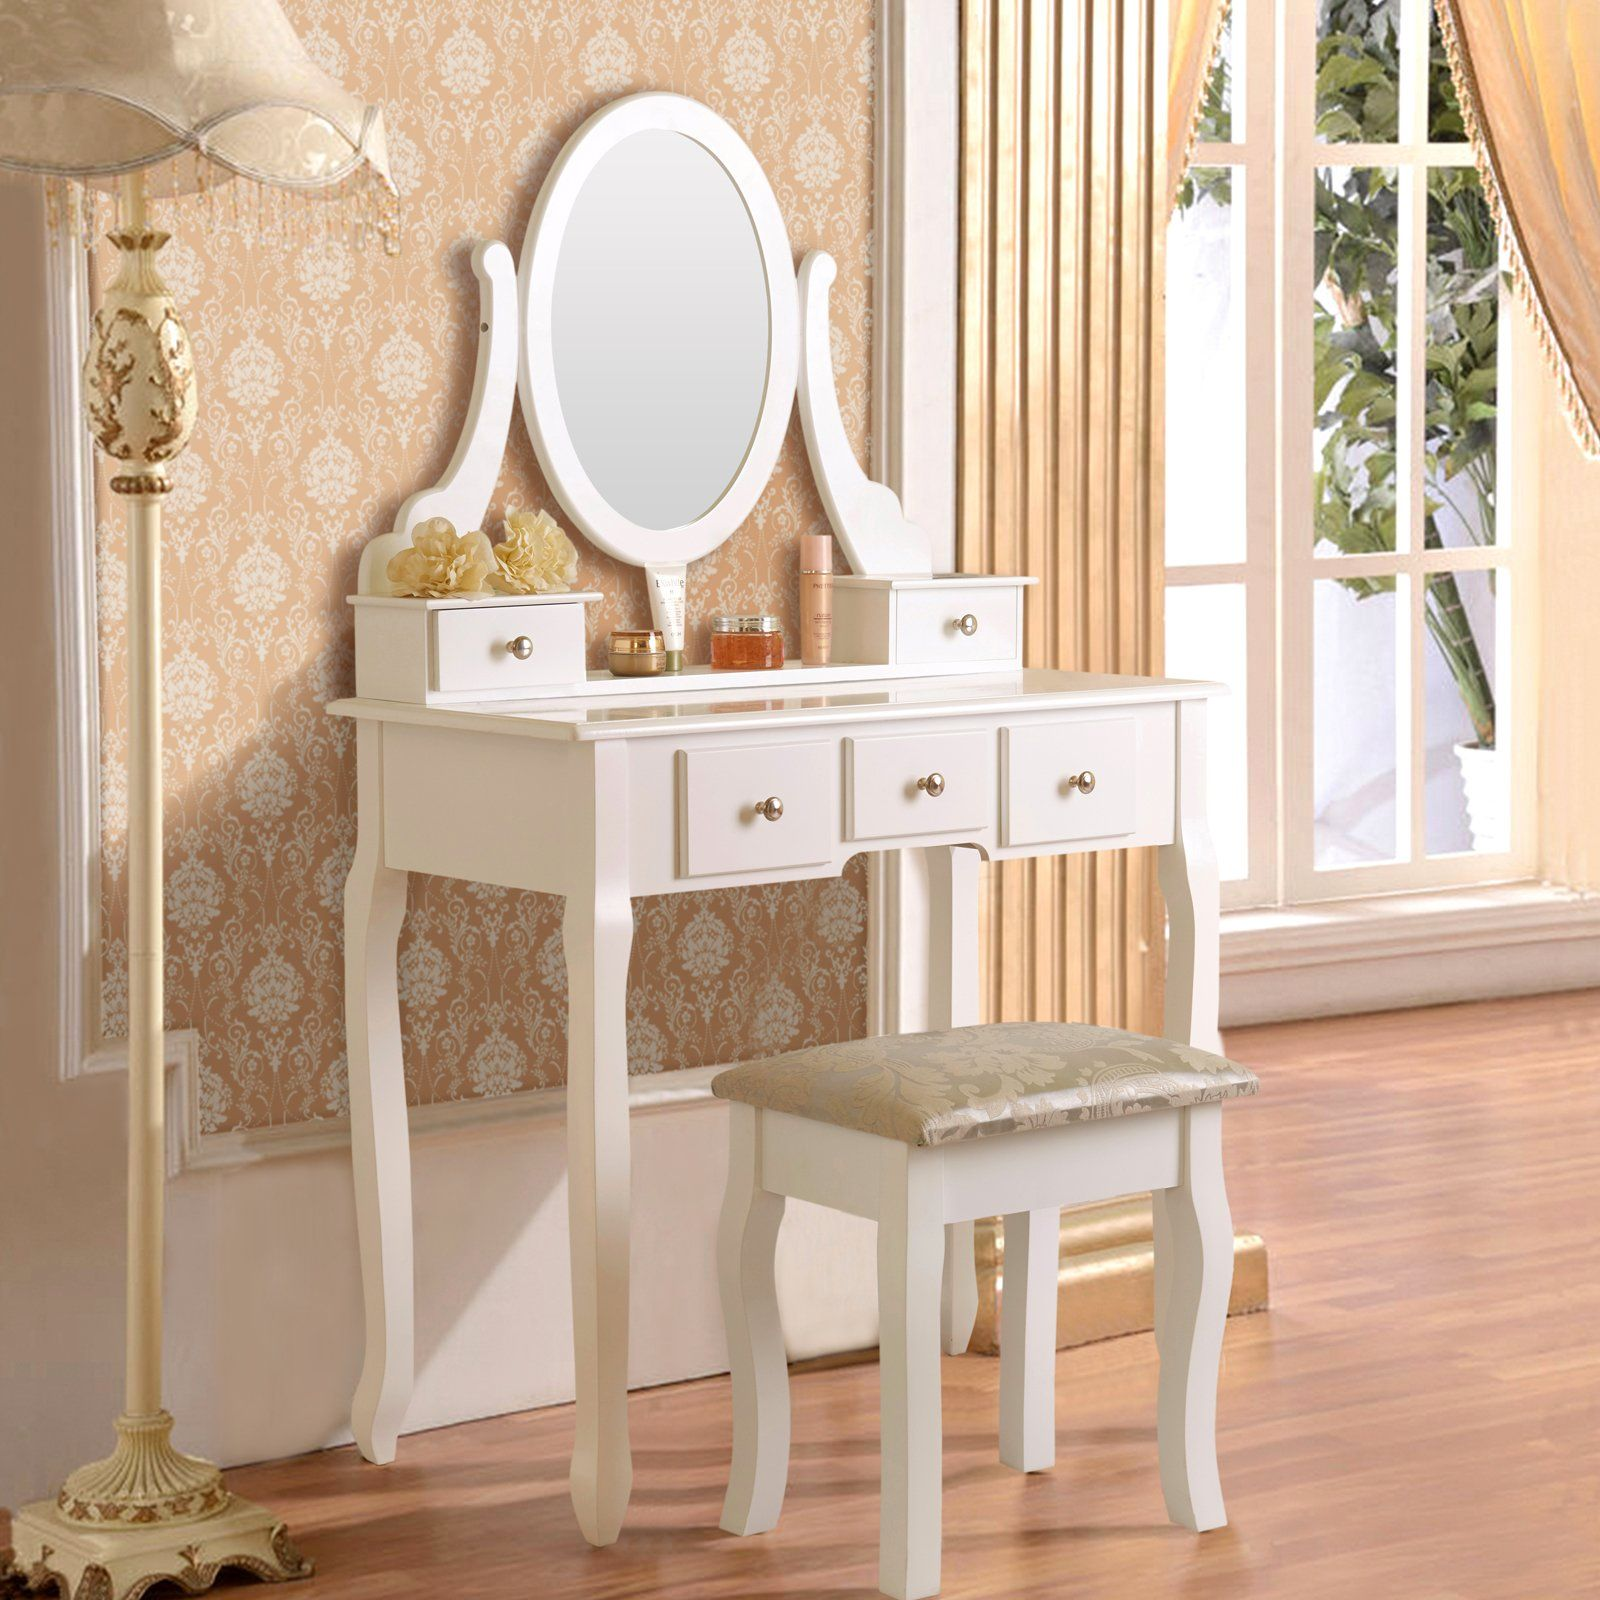 Mecor Vanity Makeup Table Set Dressing Table with 5 Drawers/Stool ...